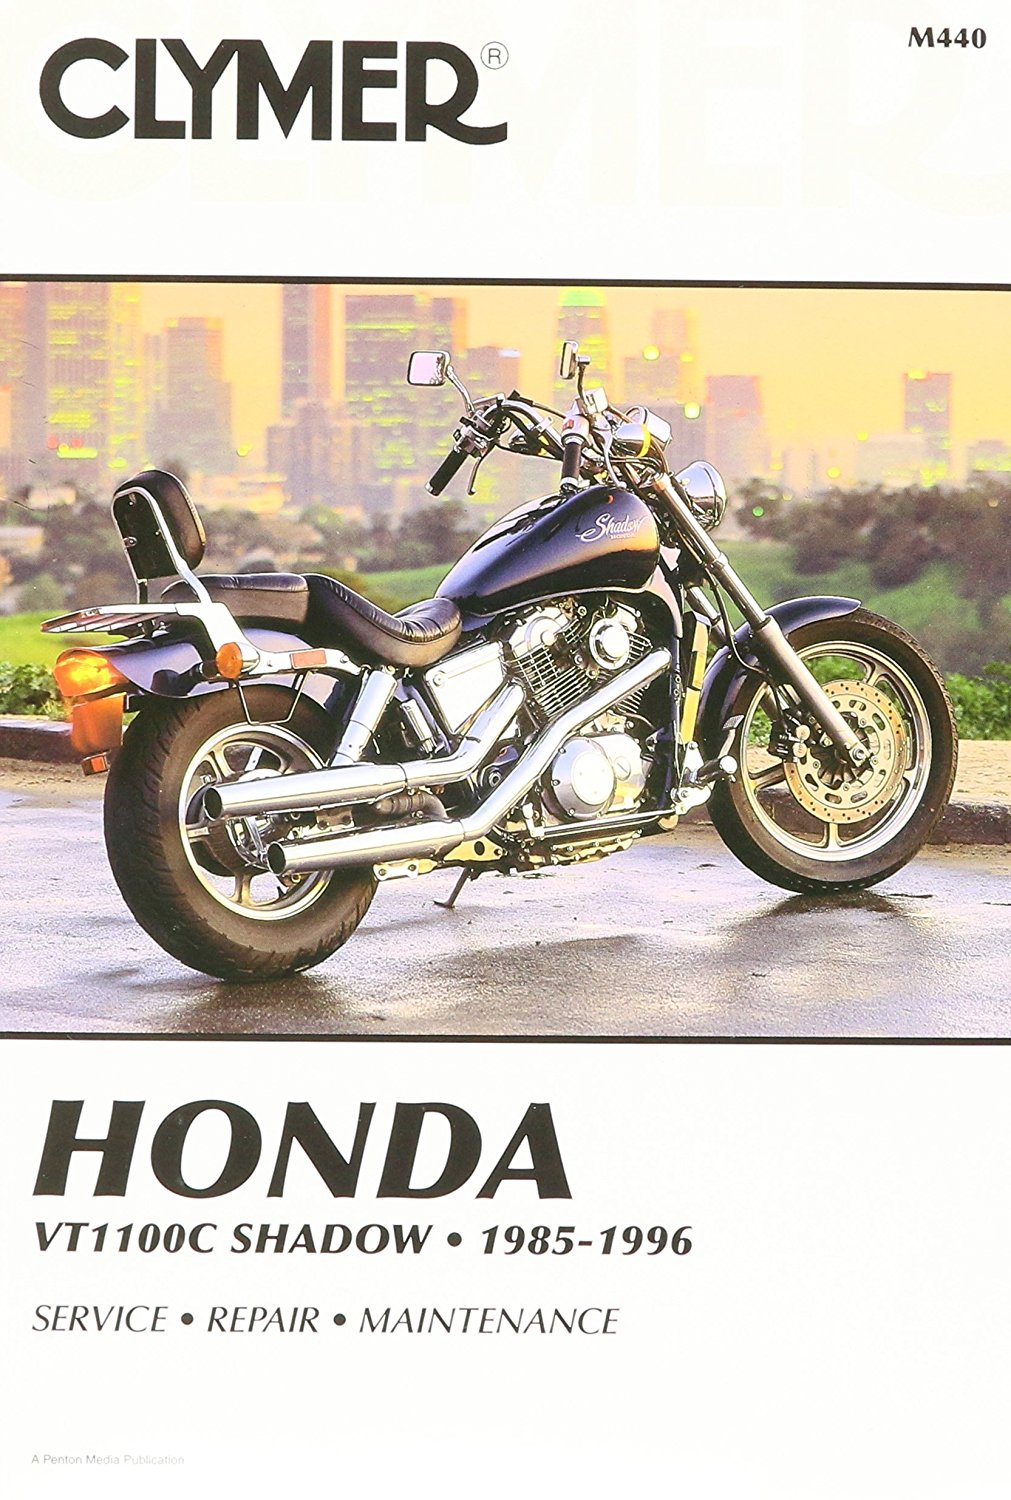 Cheap shadow manual find shadow manual deals on line at alibaba get quotations clymer repair manual for honda vt1100c shadow 85 96 publicscrutiny Image collections